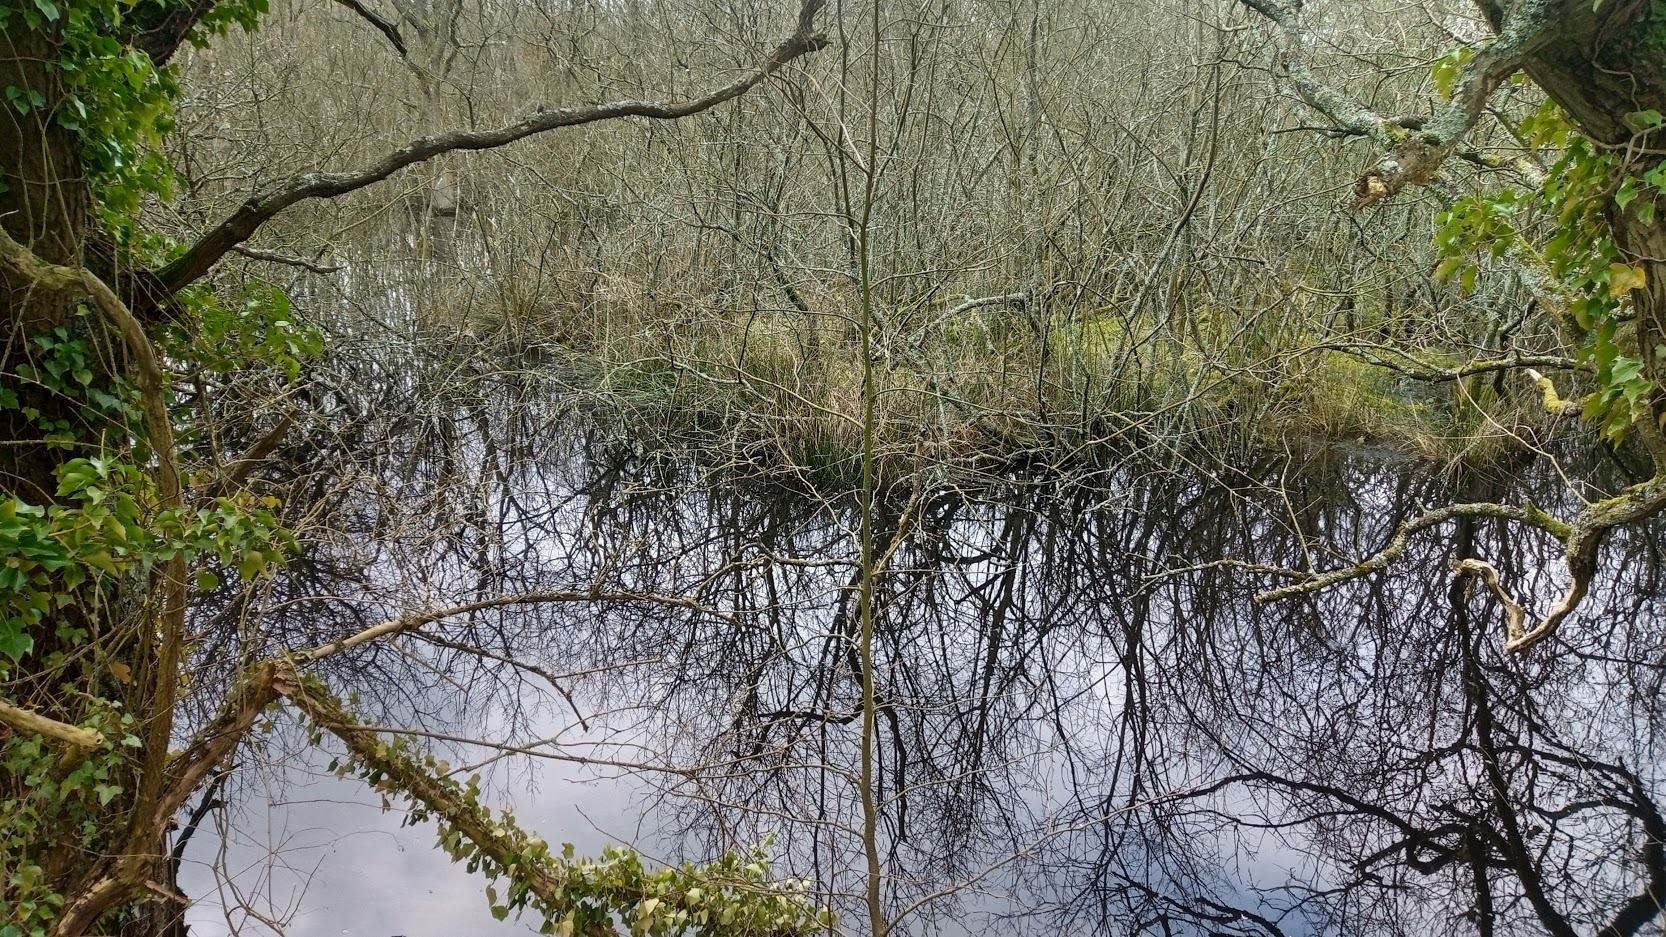 Photo 1: raft of vegetation consisting of sedges, rushes, willow and spiky bog-moss